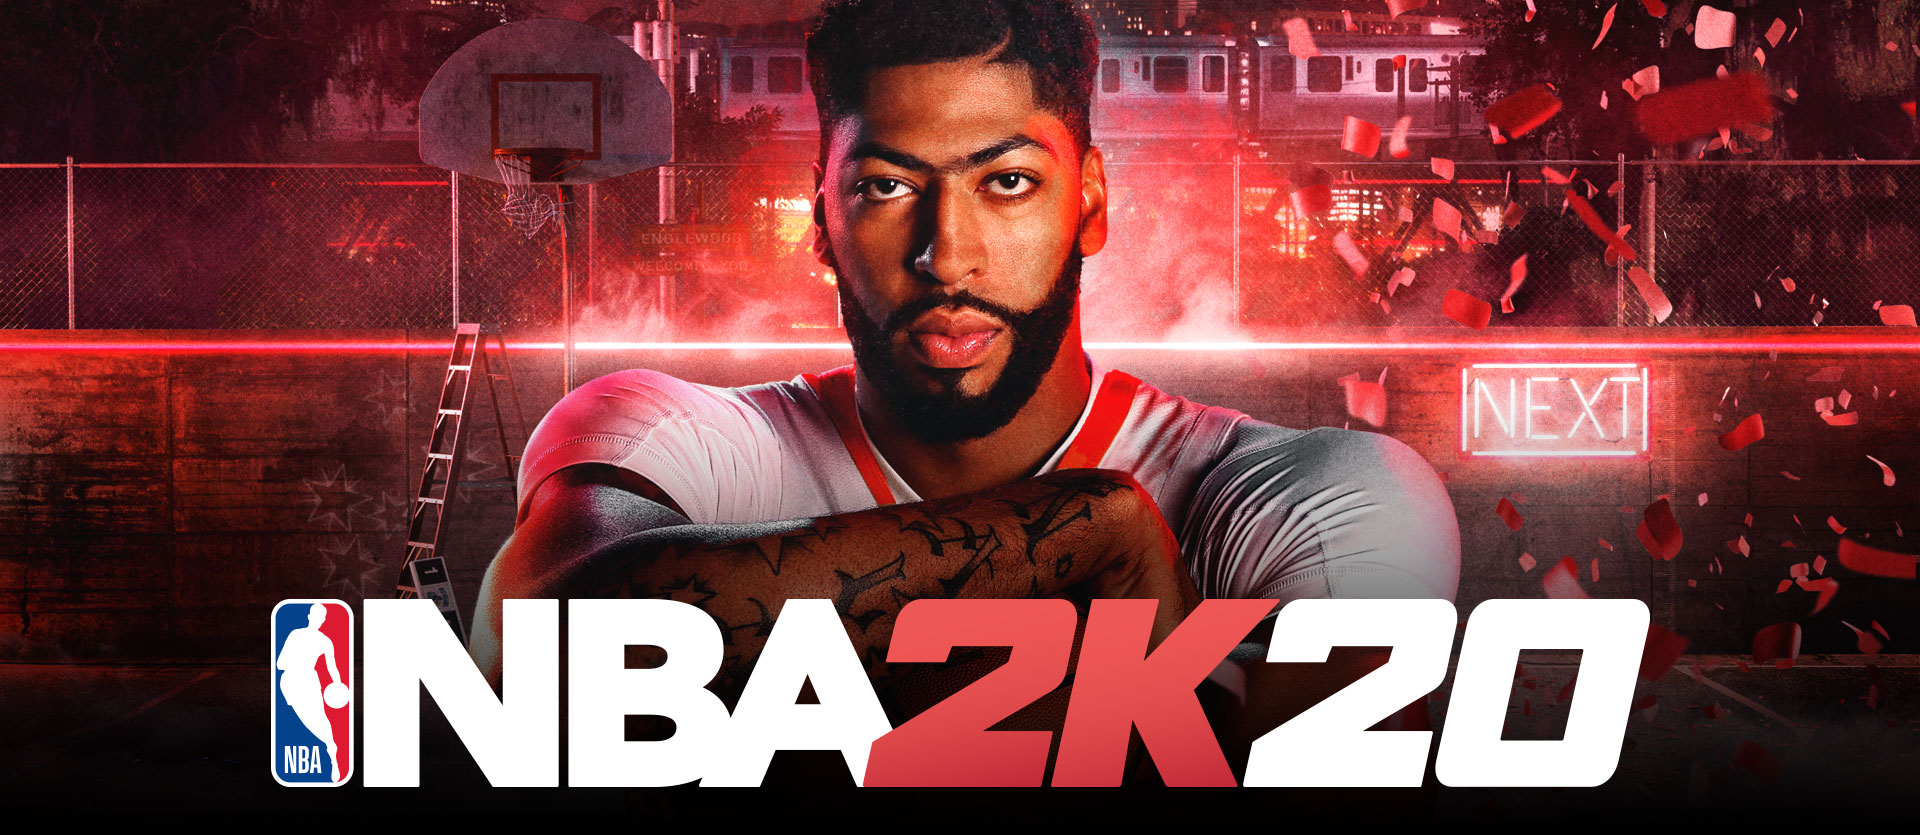 NBA logo, NBA 2K20 logo, front view of Anthony Davis in front of a red hued background with a basketball hoop, light-up Next sign, and confetti